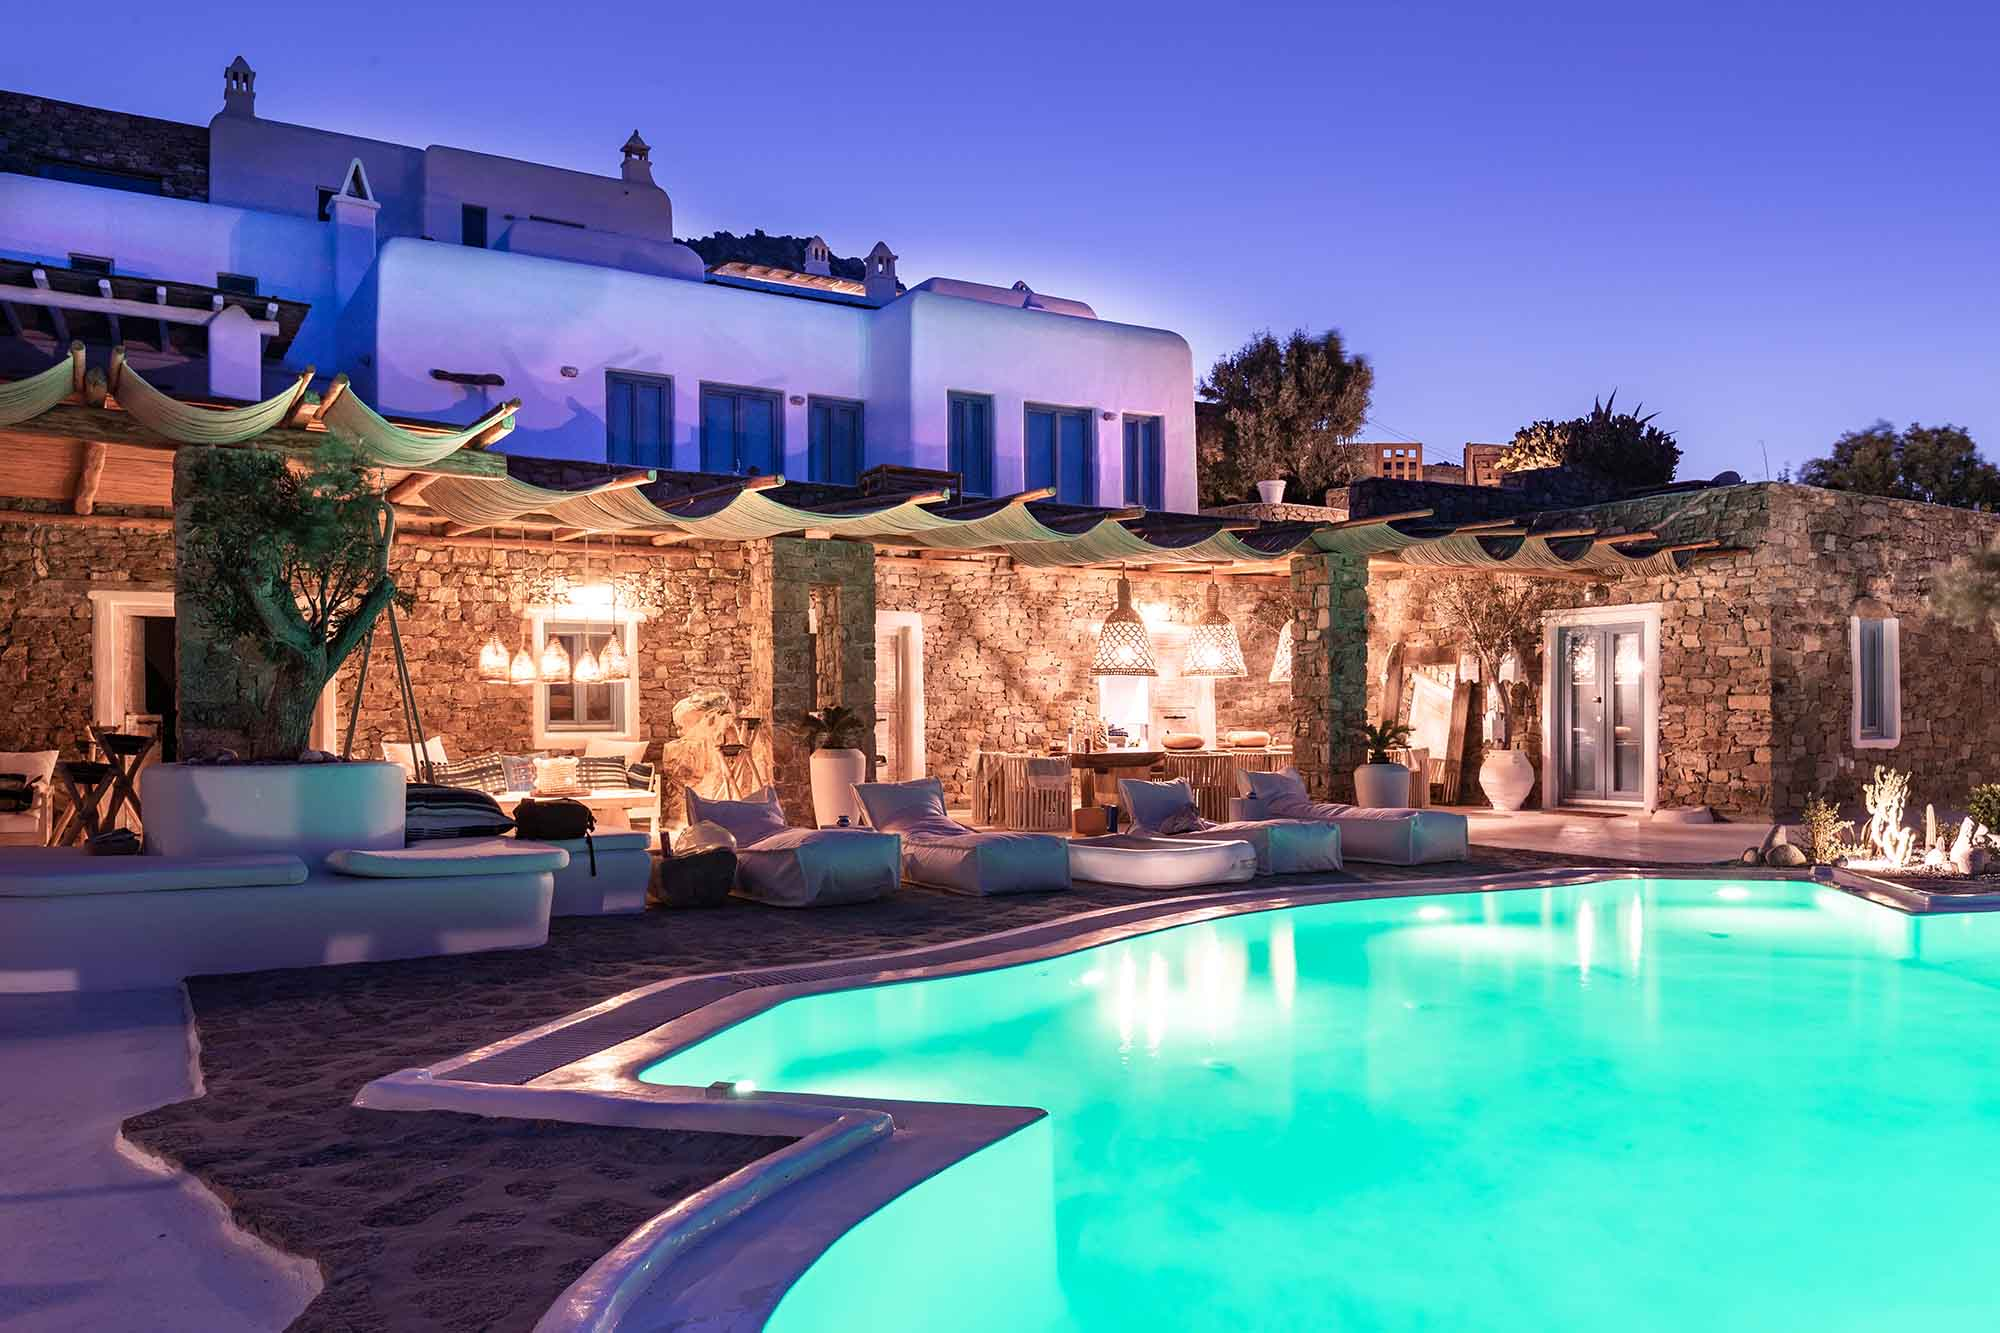 RENT A LUXURIOUS VILLA BY THE SEA IN MYKONOS - VILLA KARKOS - blue swimming pool at night